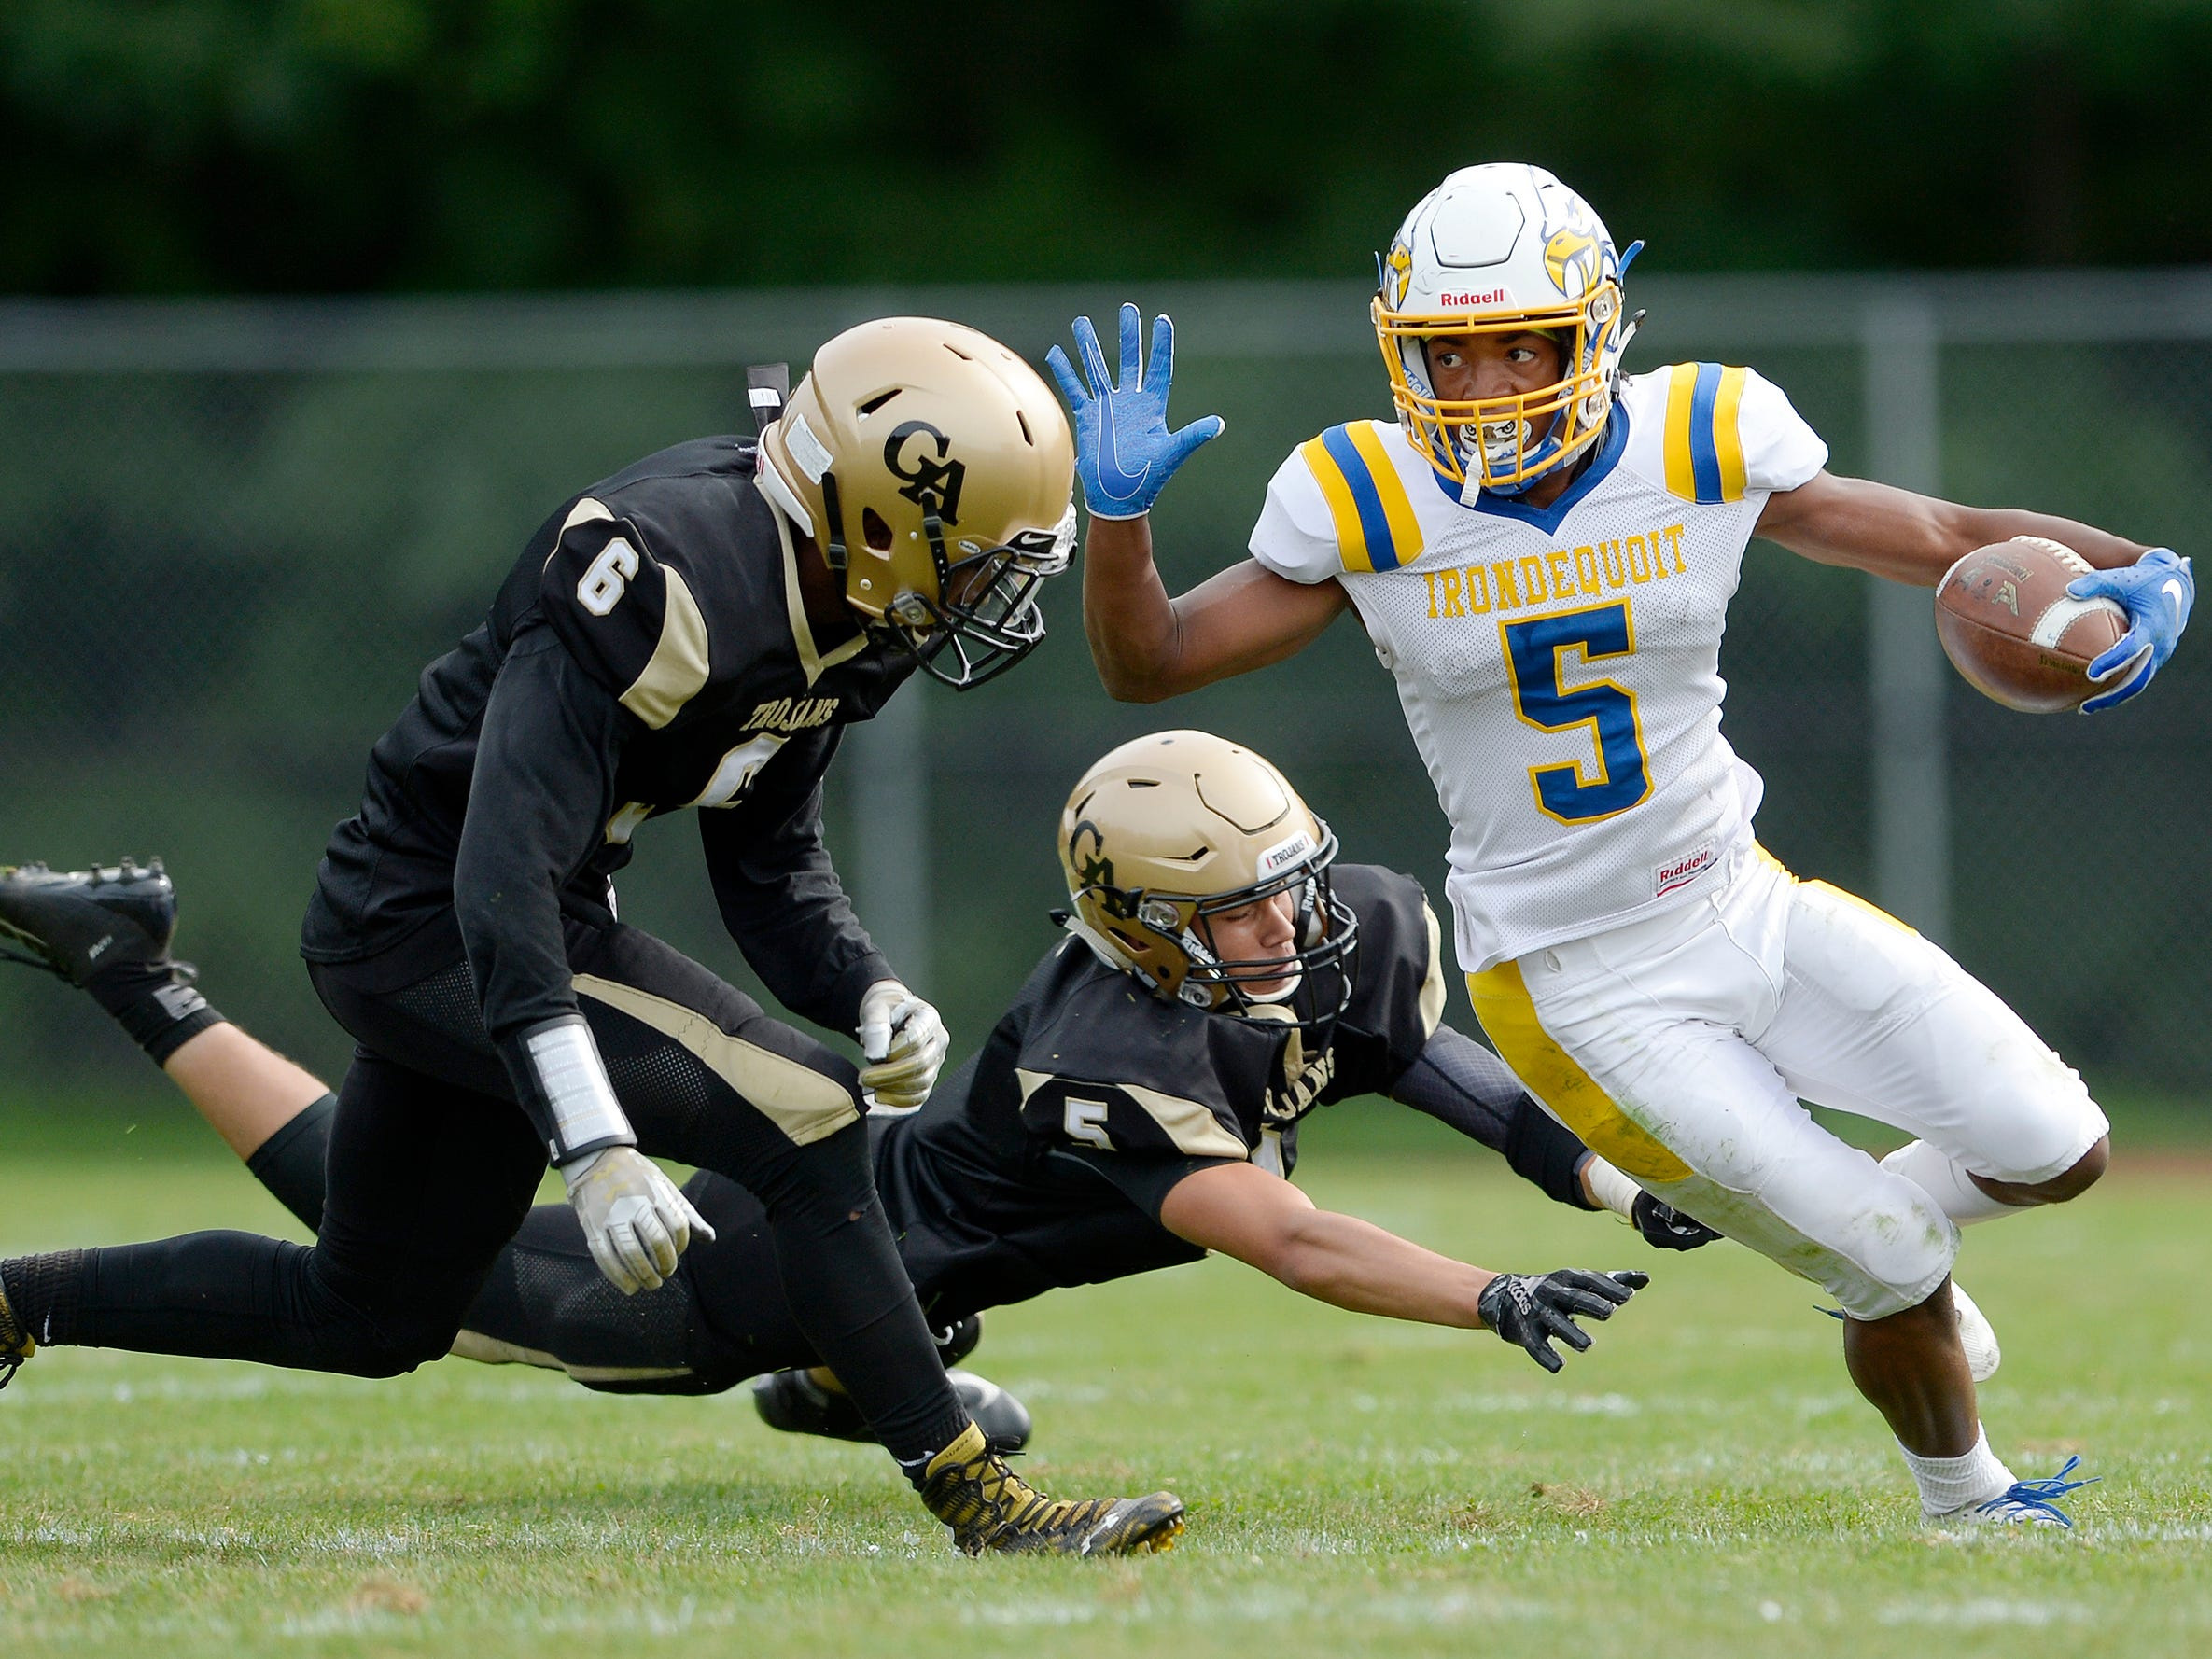 Irondequoit's Jadon Turner, right, eludes the tackles of Greece Athena's Nate Bogoniewski, bottom, and Kelvin Reaves during a regular season game played at Greece Athena High School, Saturday, Sept. 8, 2018. Irondequoit beat Greece Athena 42-7.